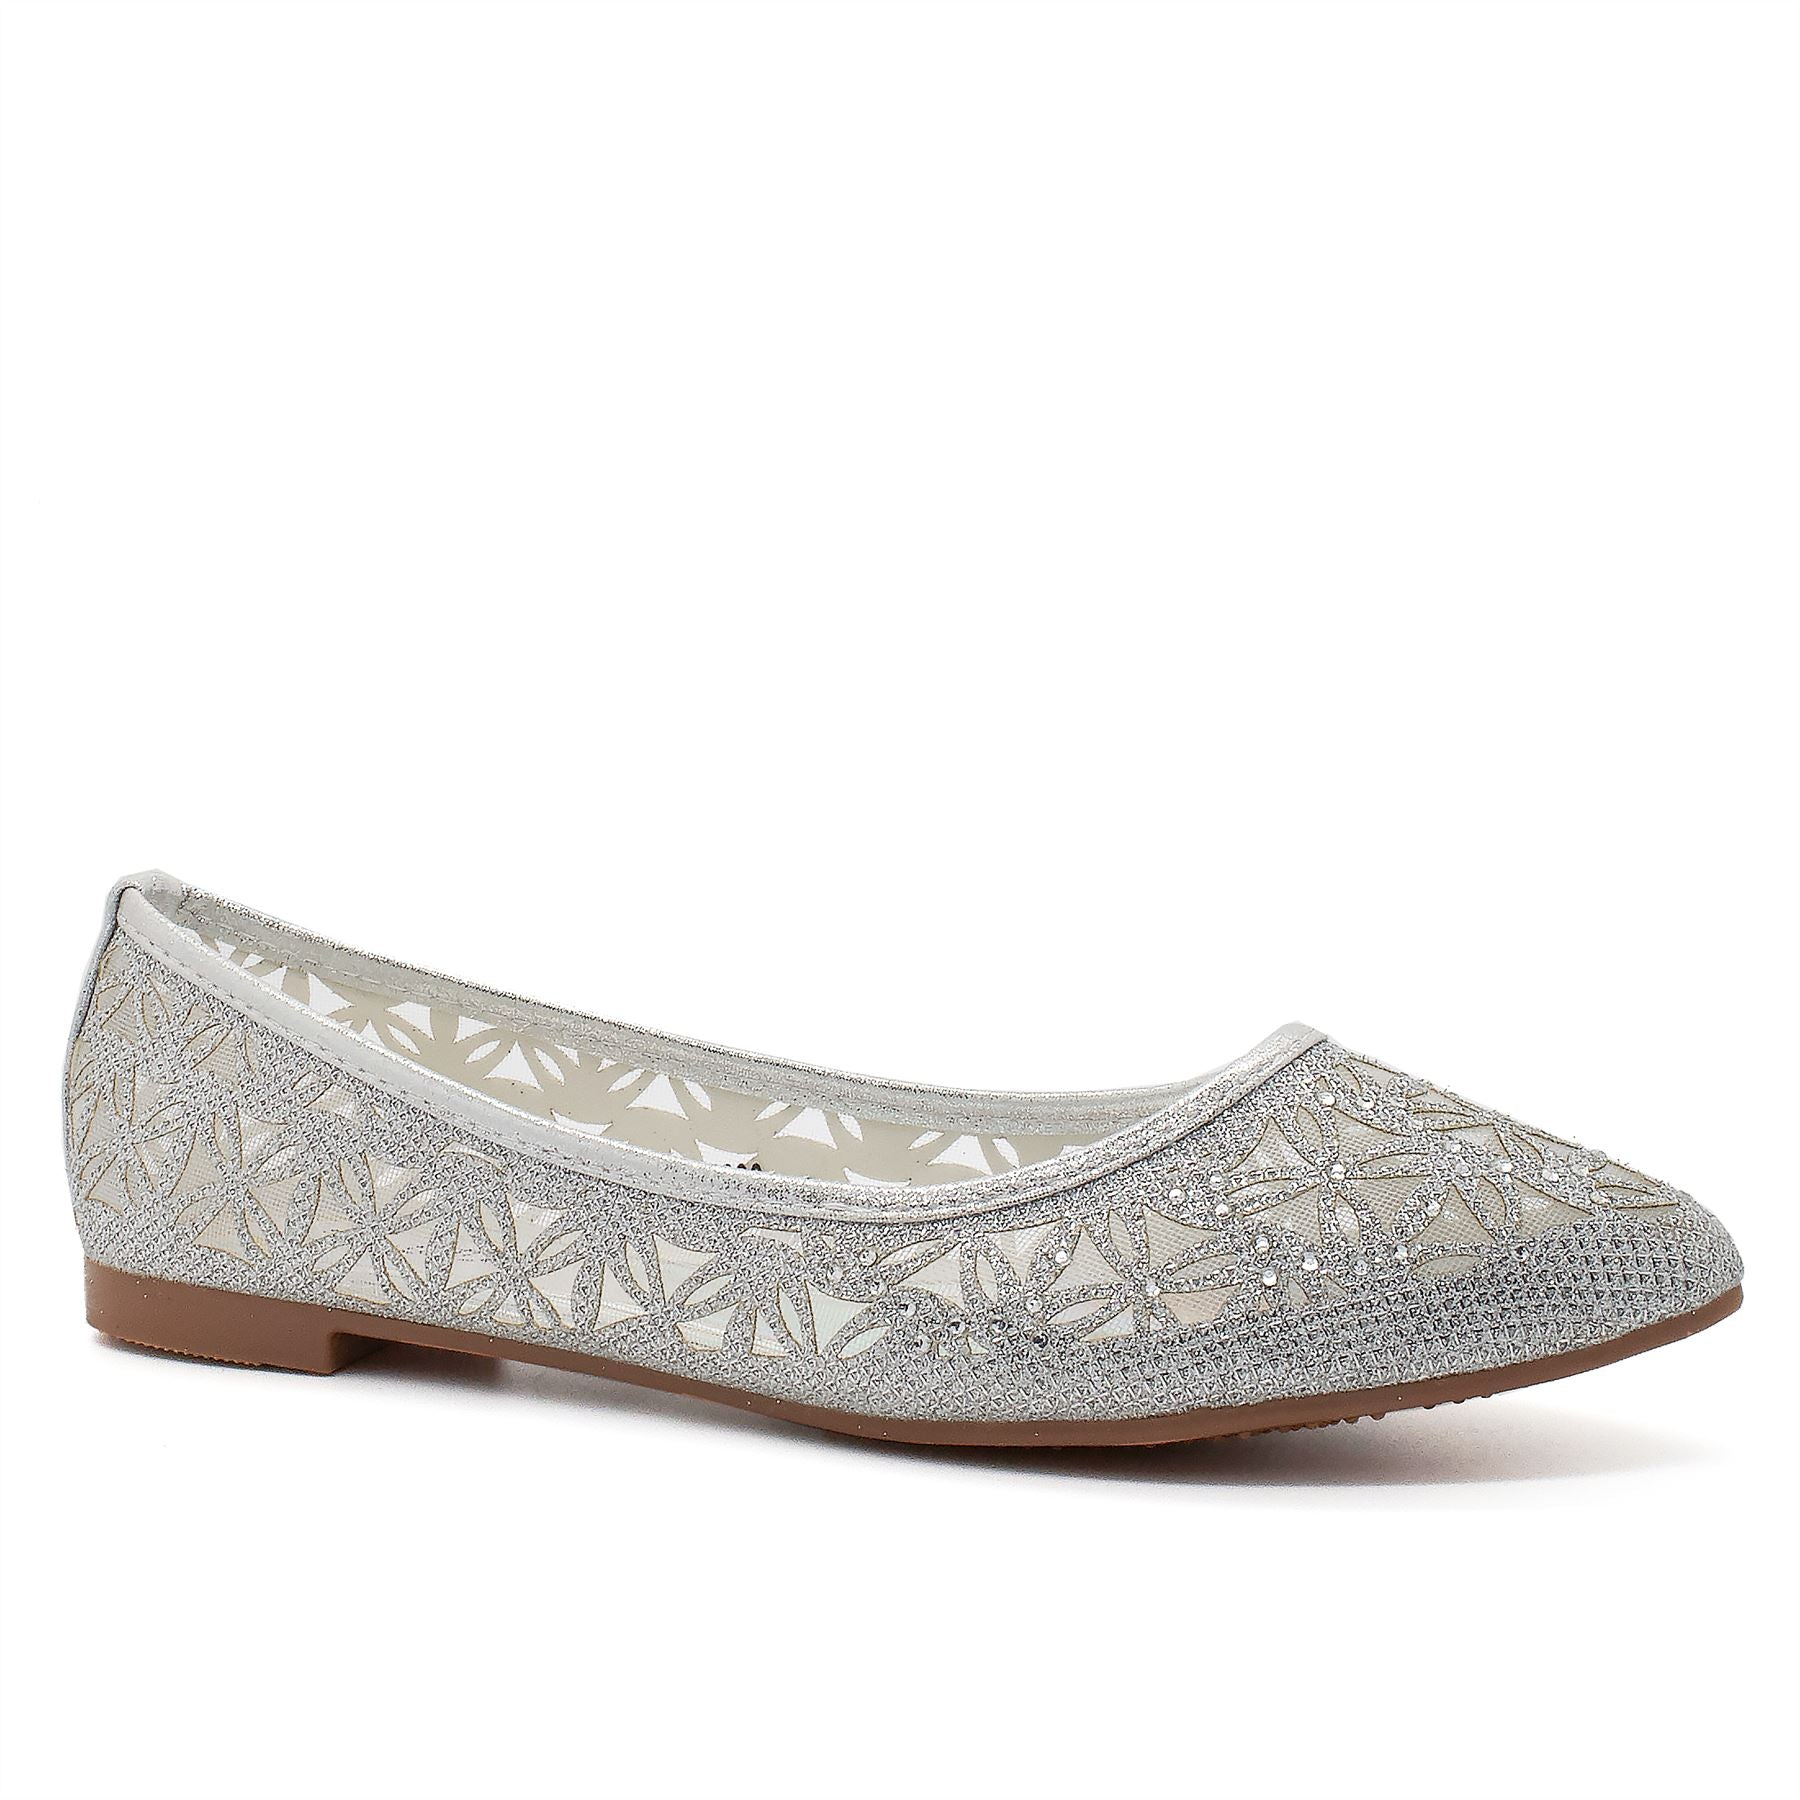 Silver Pointed Toe Ballet Flats